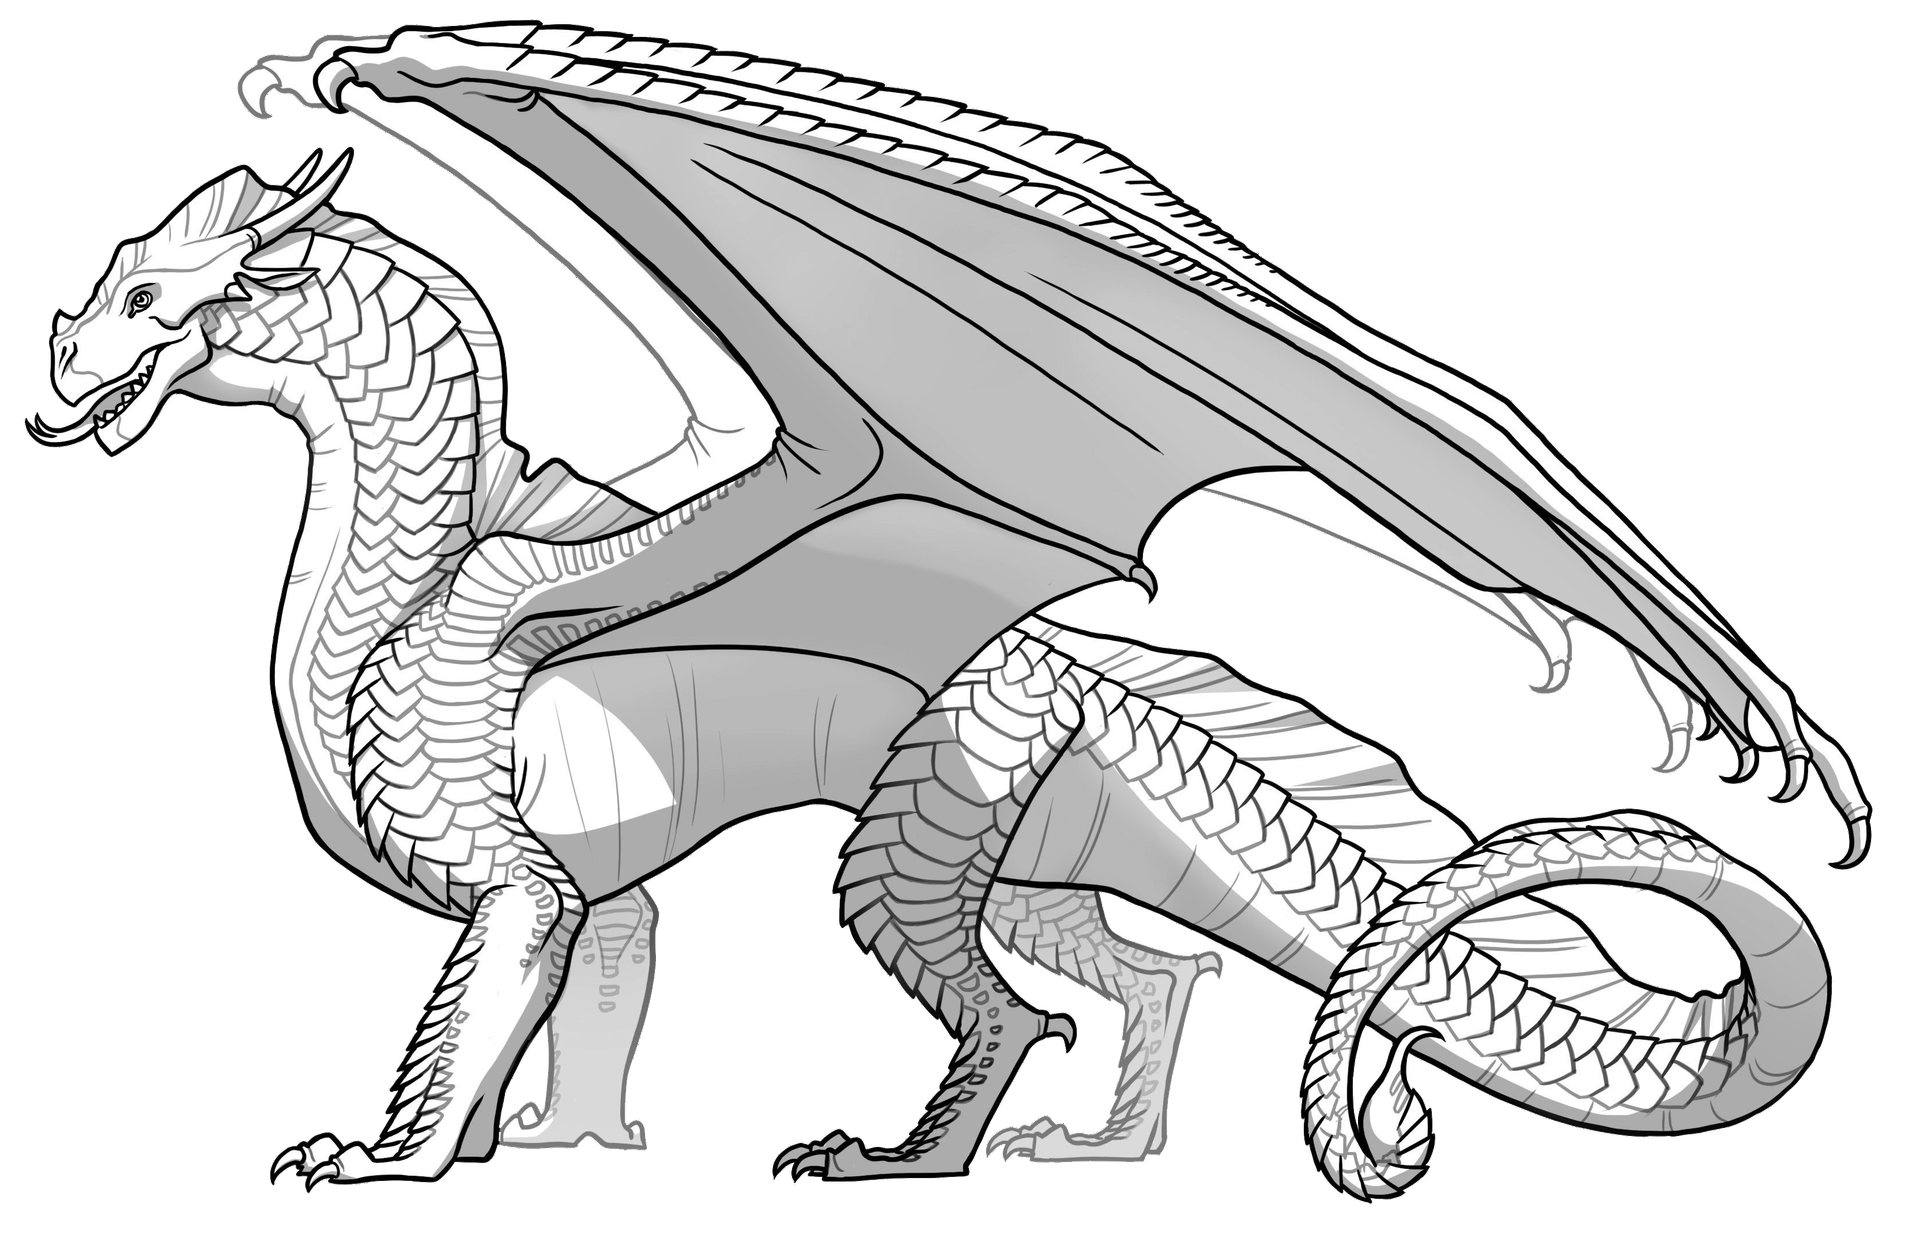 Wings Of Fire Color Edits Complete Requests Original Line Arts Dragon Coloring Page Wings Of Fire Dragons Wings Of Fire